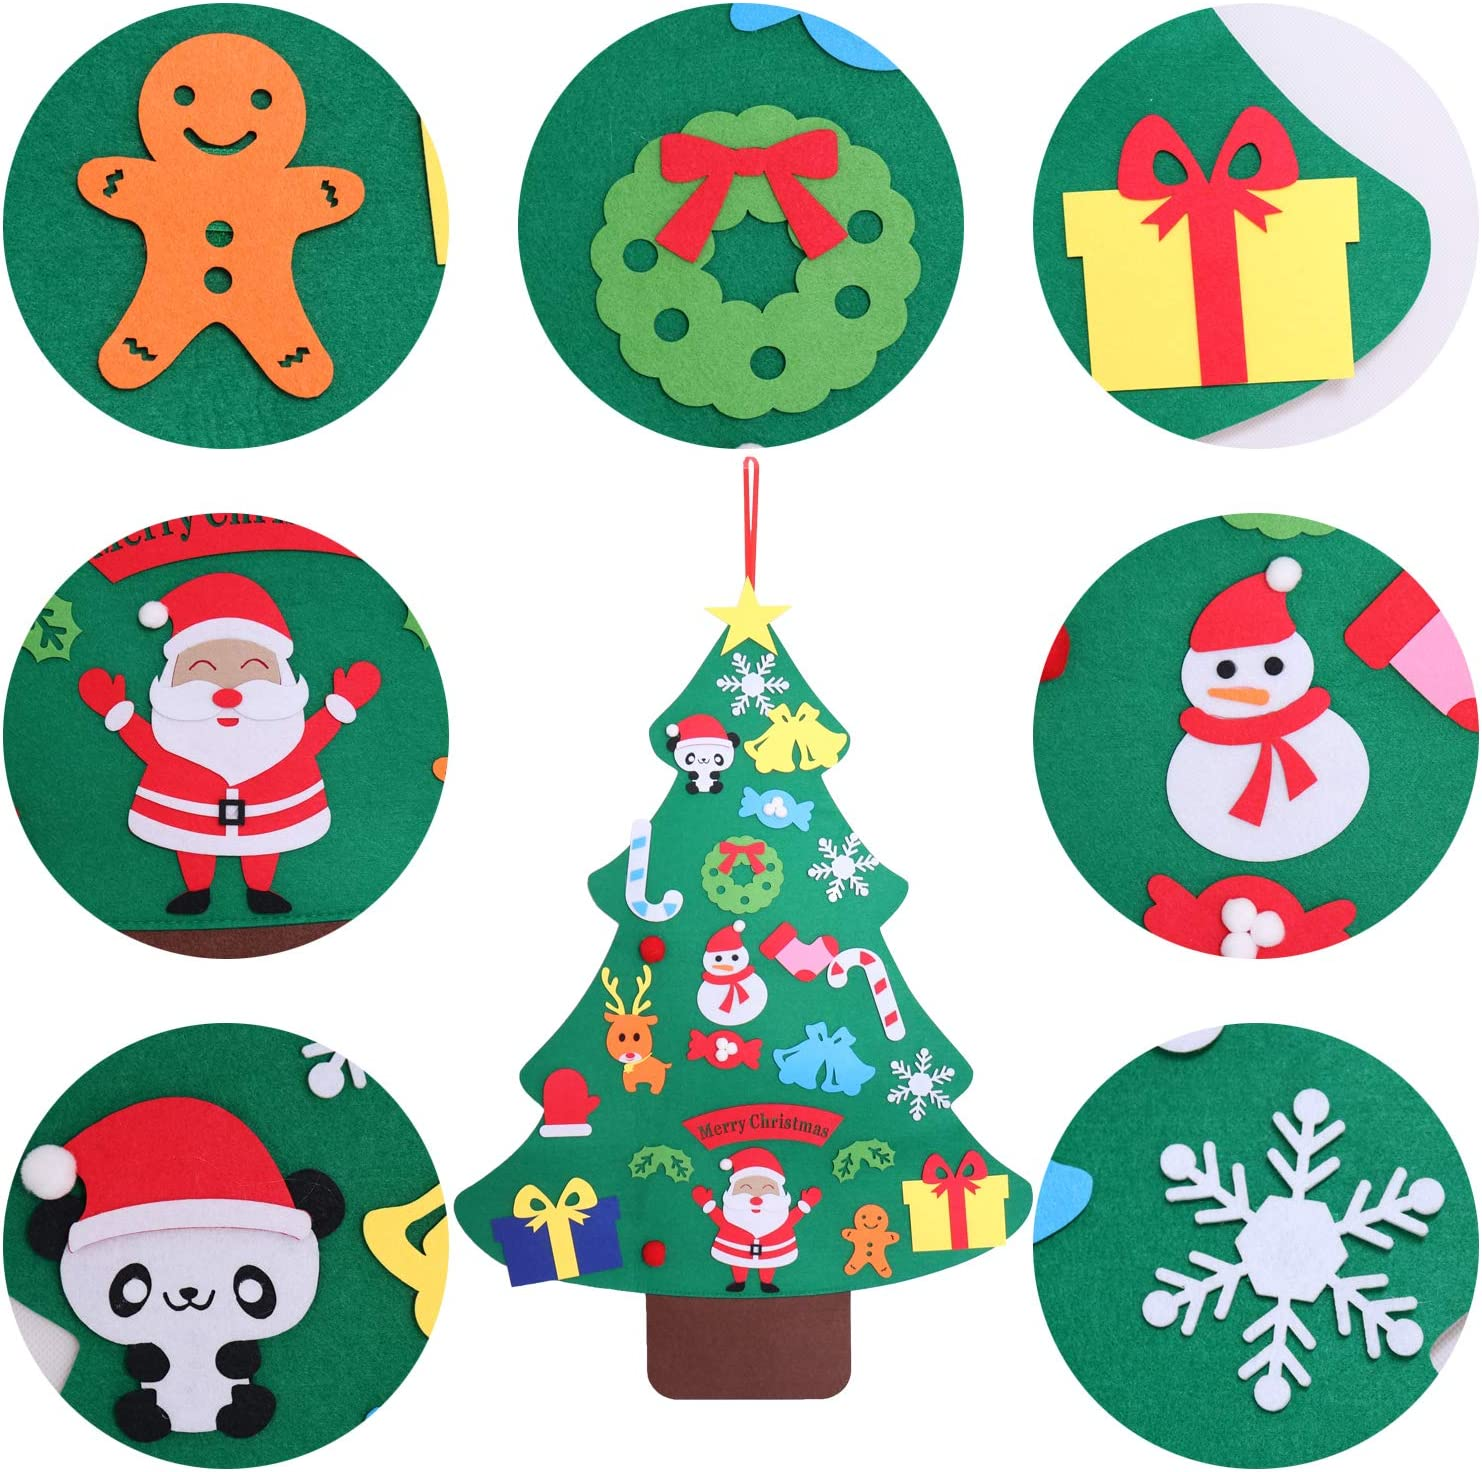 LOCOLO Felt Christmas Tree 39.4 Inch DIY Christmas Tree with 25 Pcs Ornaments Kids Toddlers Wall Decor Xmas Gifts Christmas Home Door Wall Hanging Decoration